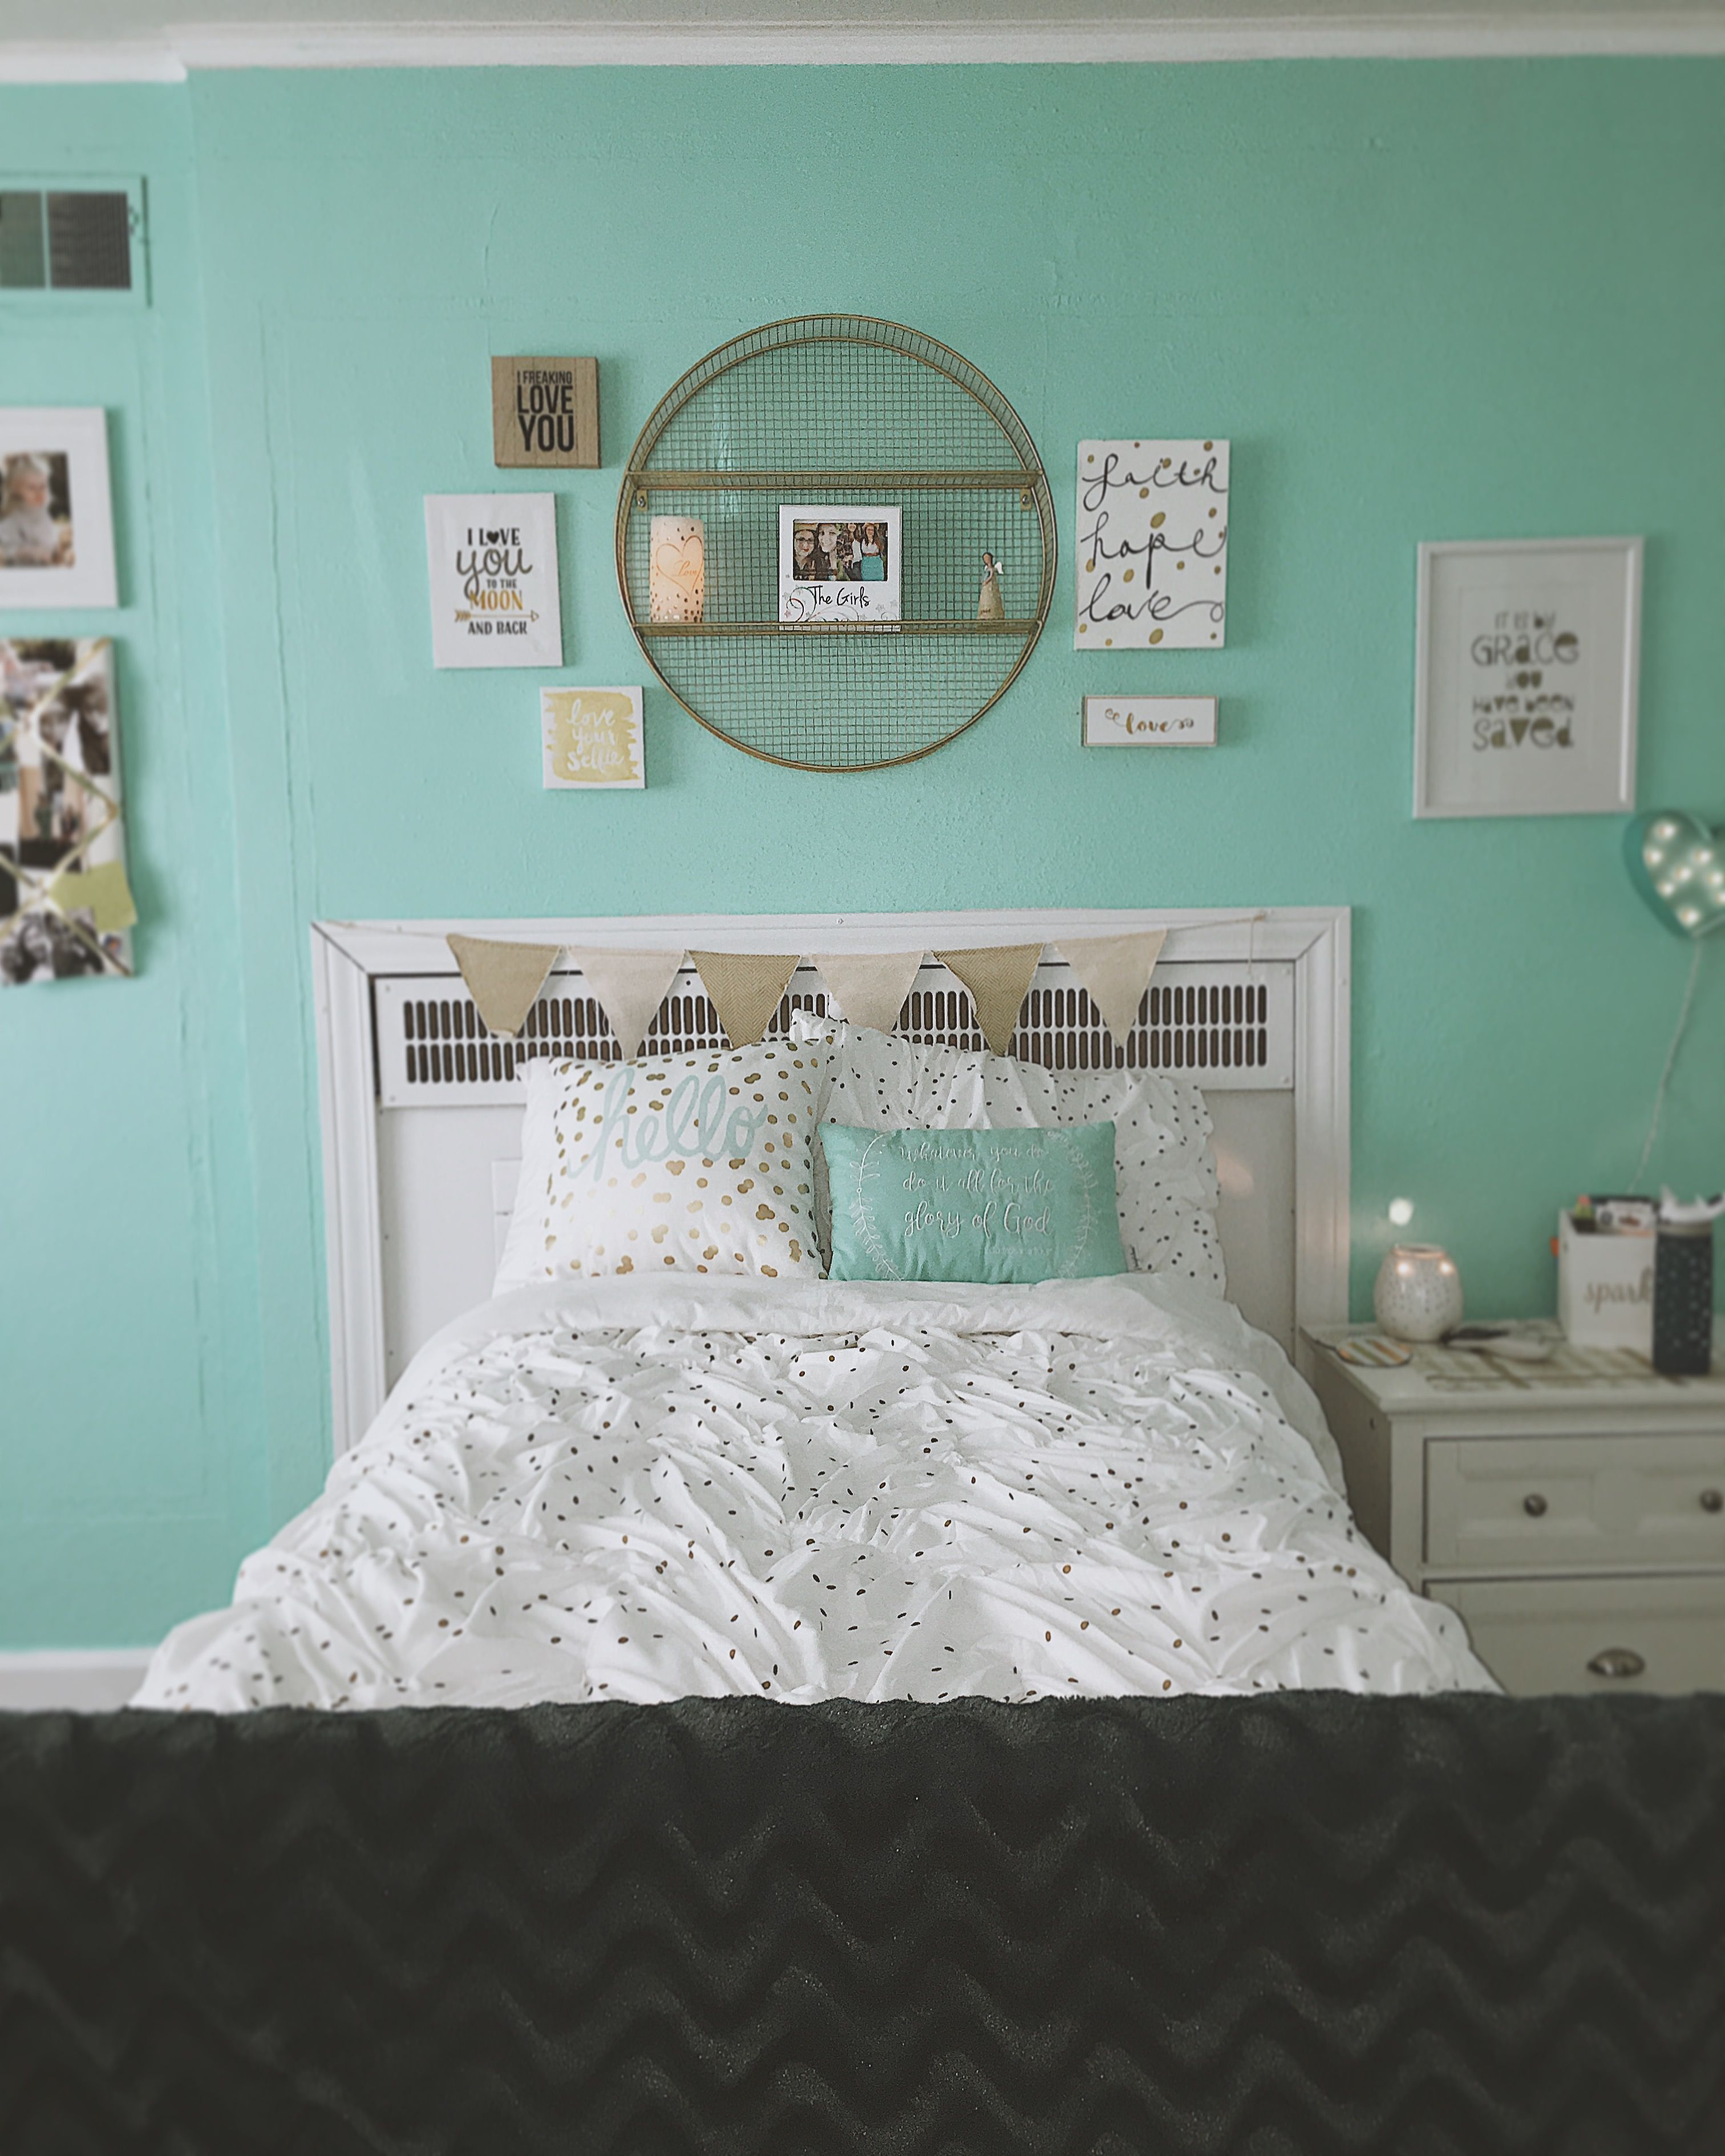 Gold White And Teal Dream Bedroom Turquoise Room Blue Room Decor Bedroom Blue Room Decor